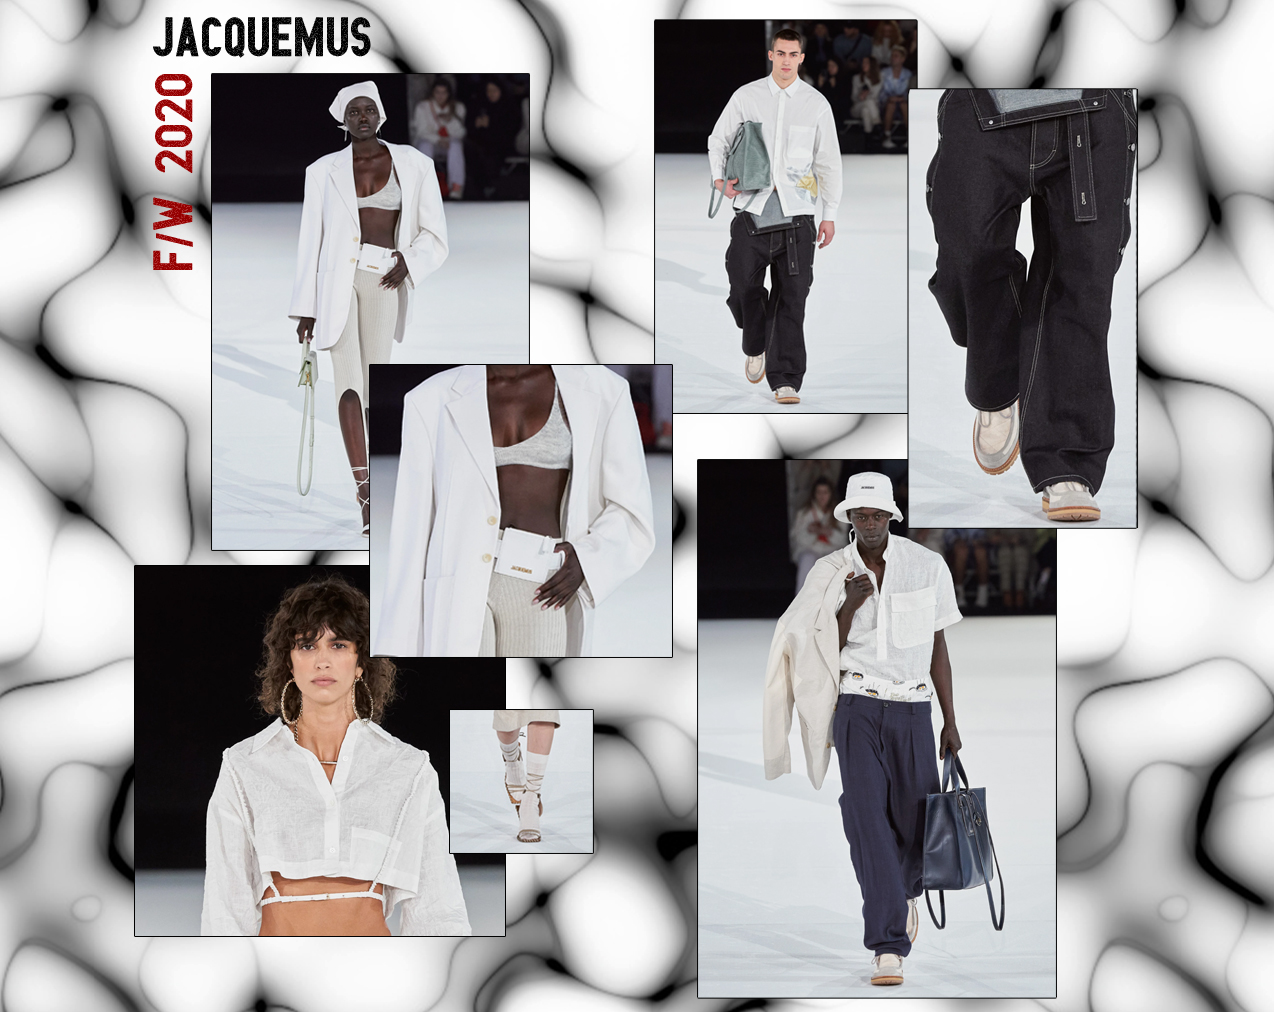 A collage featuring six photographs from Jacquemus' F/W 2020 runway show.